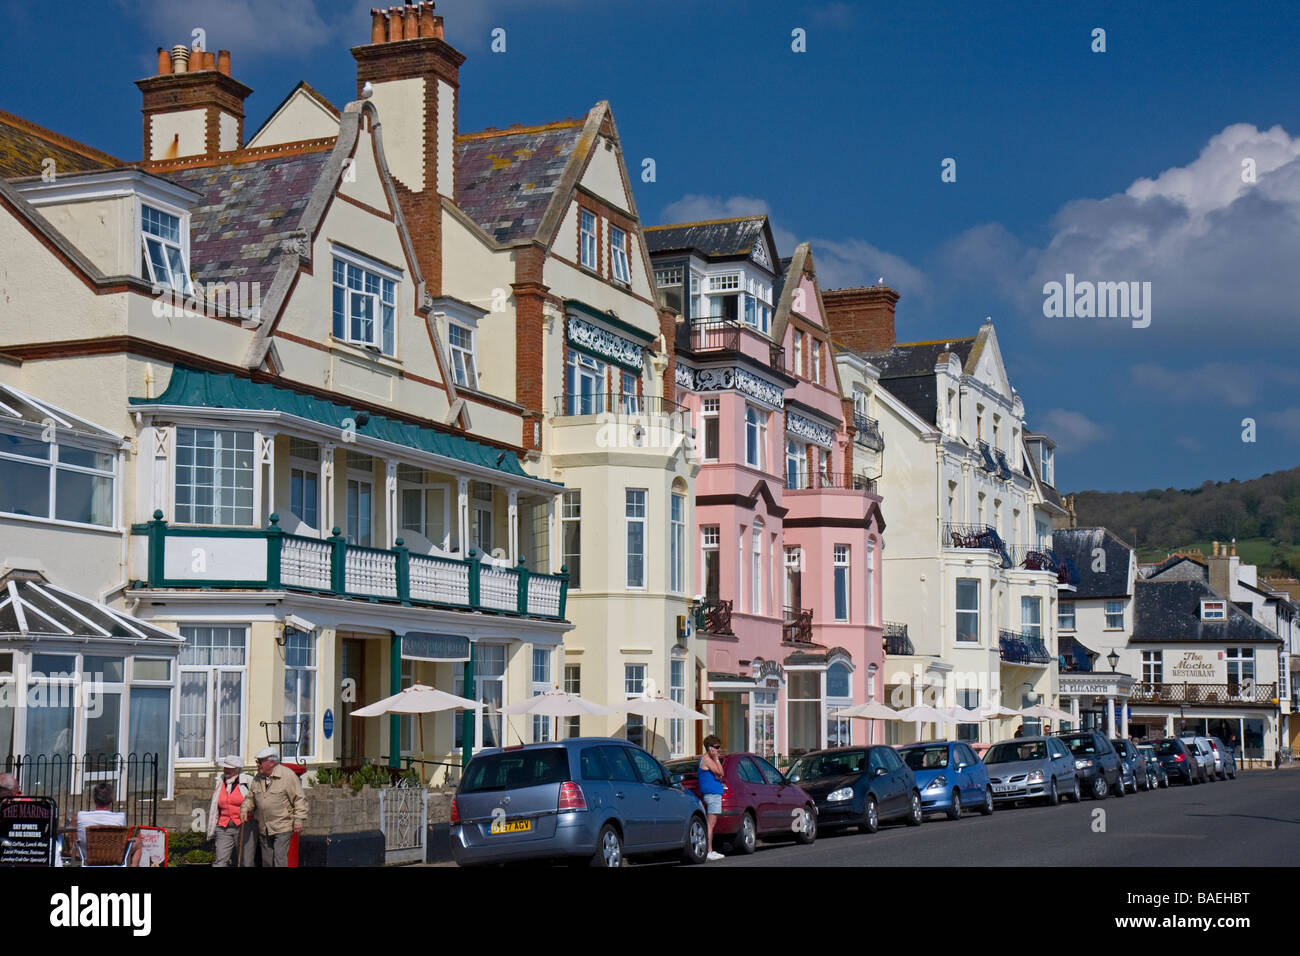 Row of hotels on the sea front, Sidmouth, Devon - Stock Image